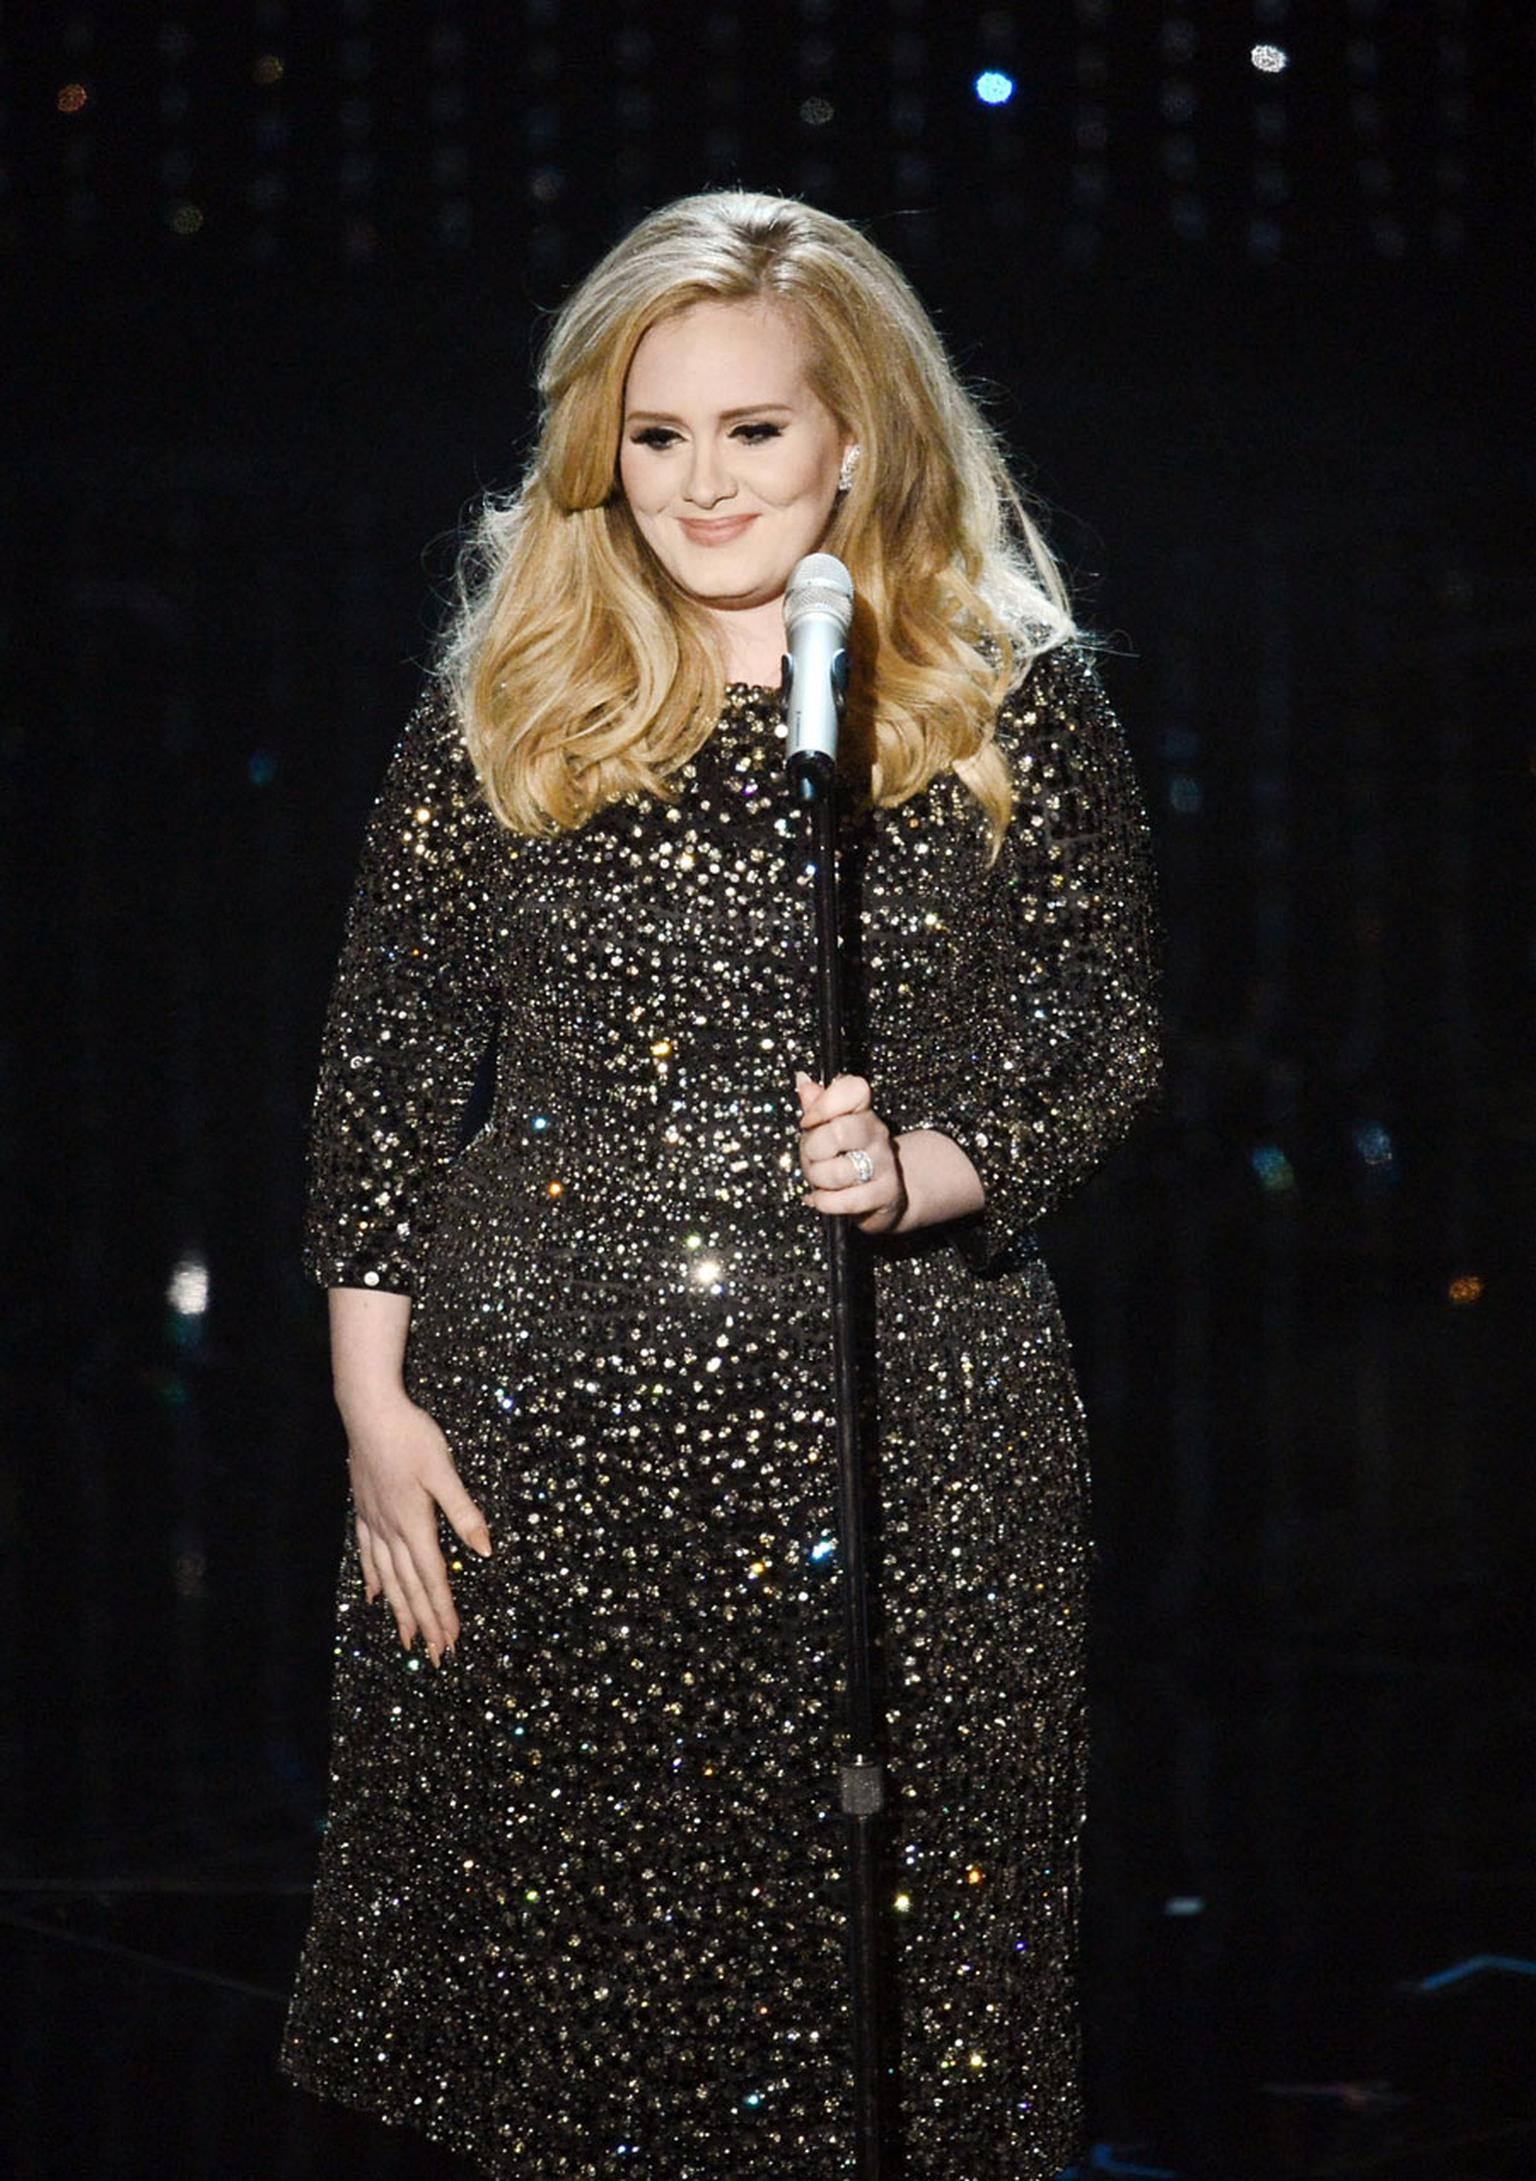 Adele---Van-Cleef-and-Arpels---Photo-by--Kevin-Winter-162588676